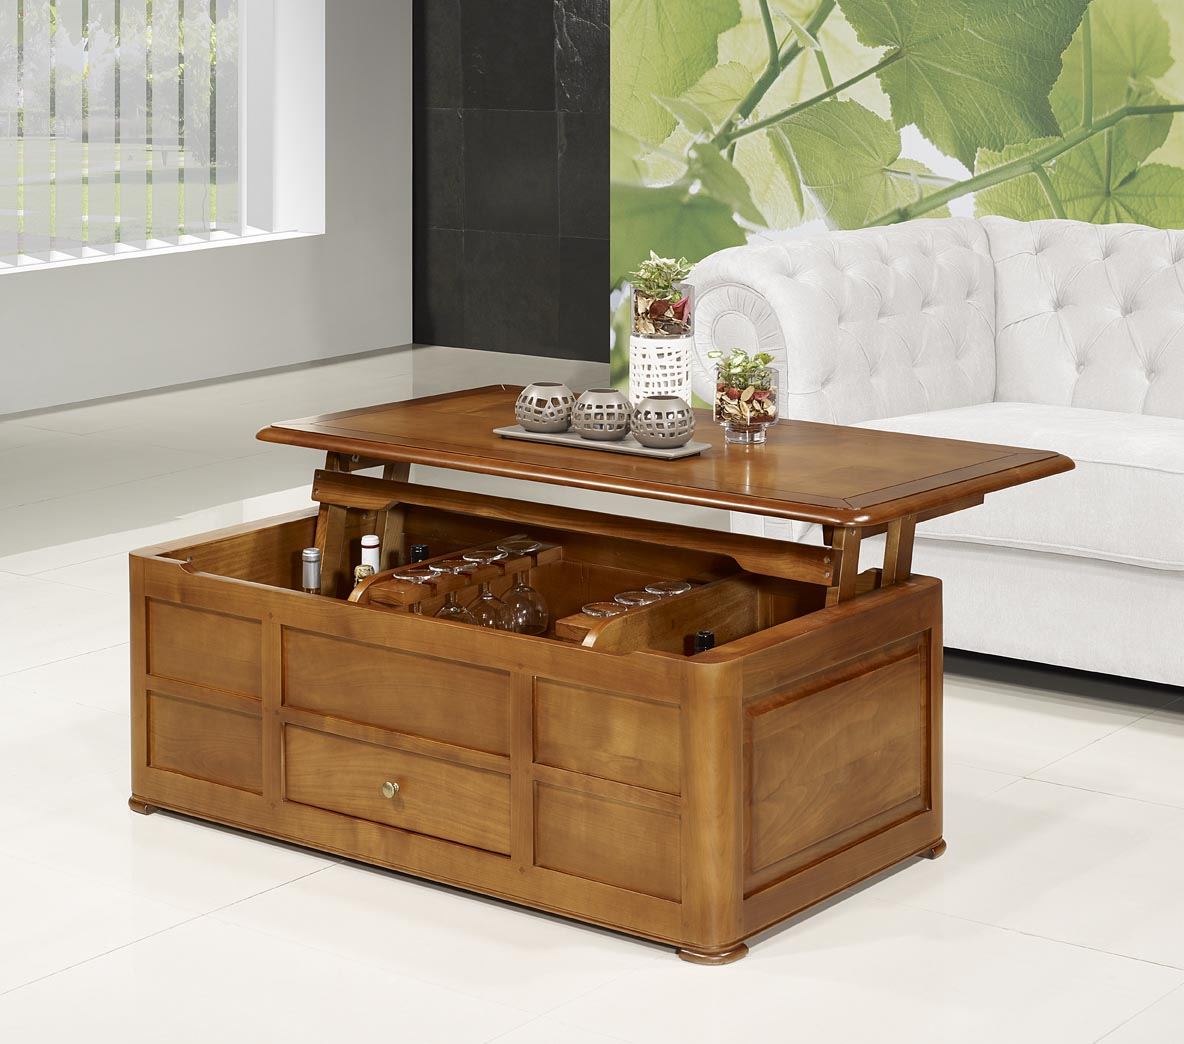 Table basse bar ine en merisier de style louis philippe for Meuble bar bois massif